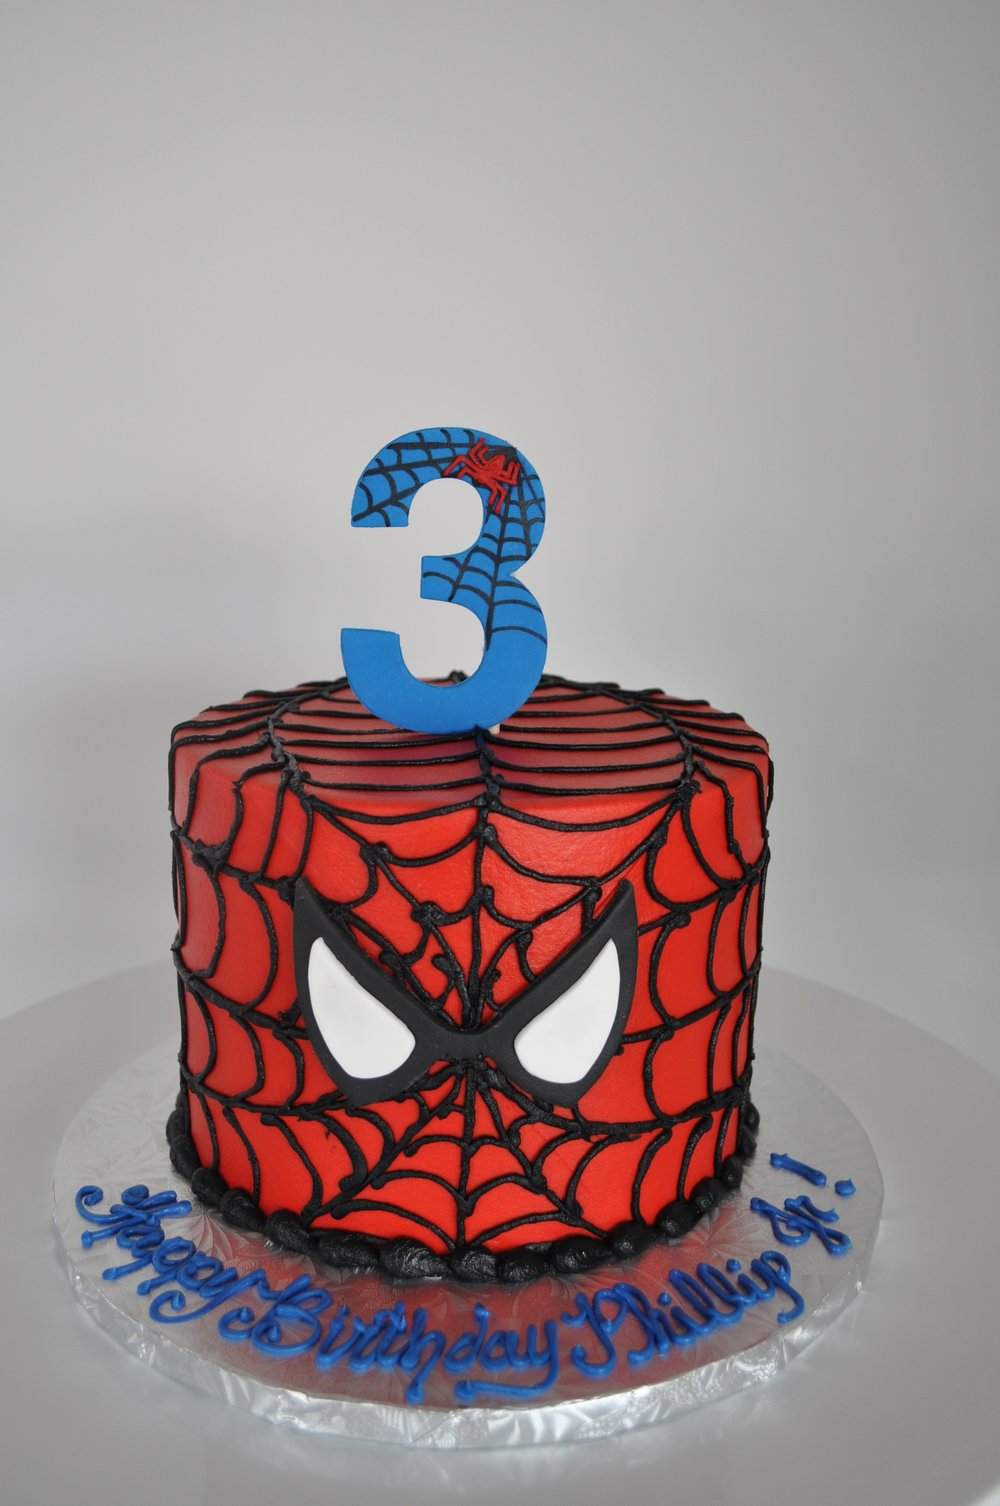 Piped Spiderman Cake.jpeg